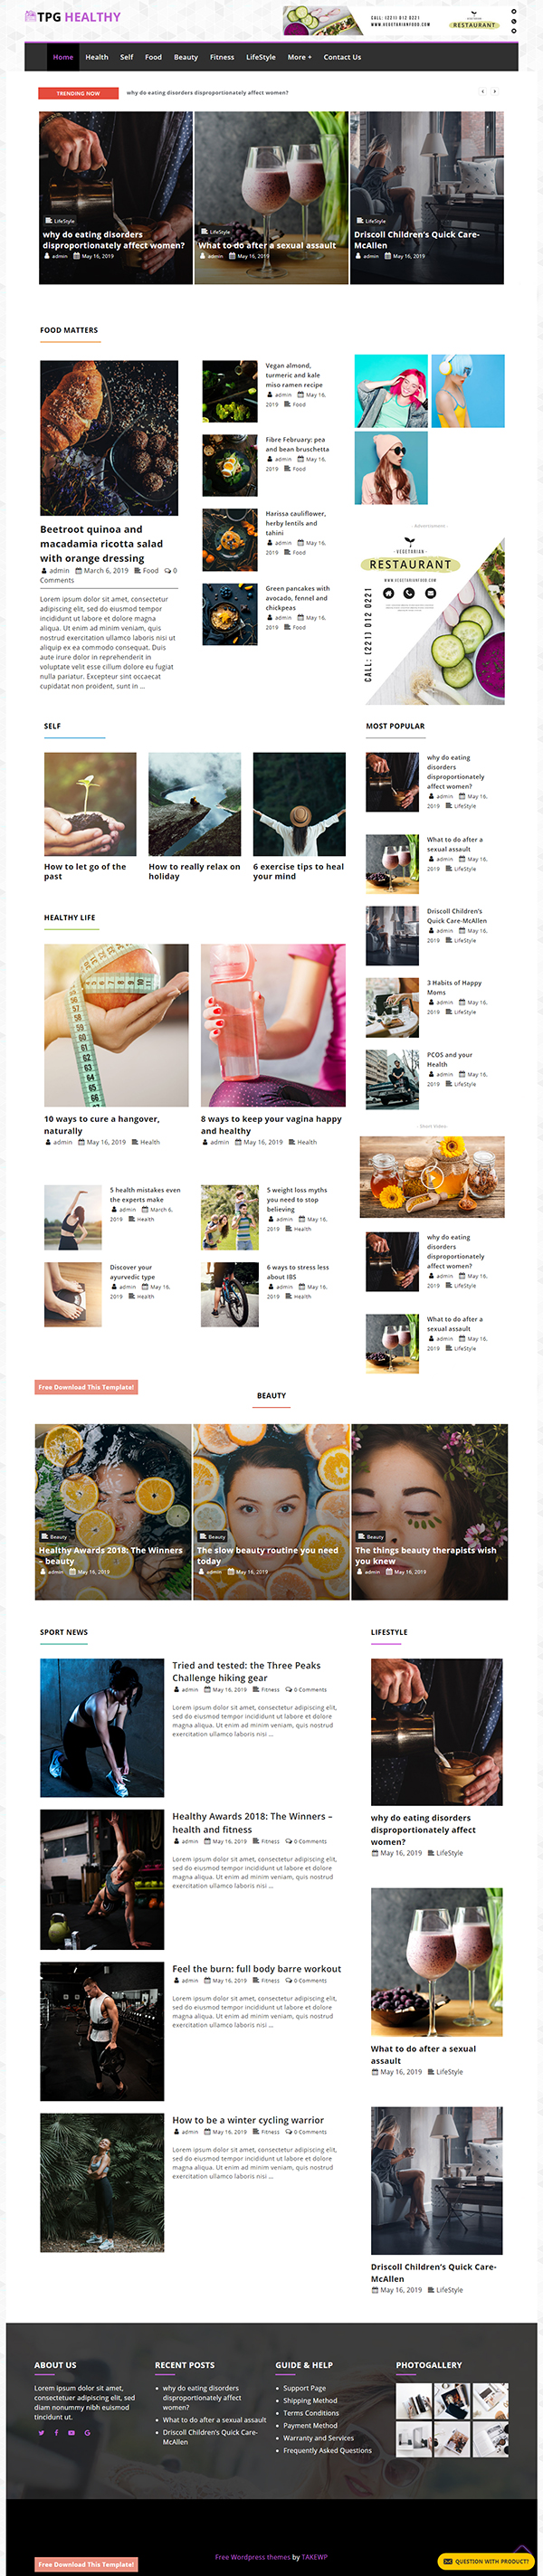 TPG Healthy Magazine WordPress